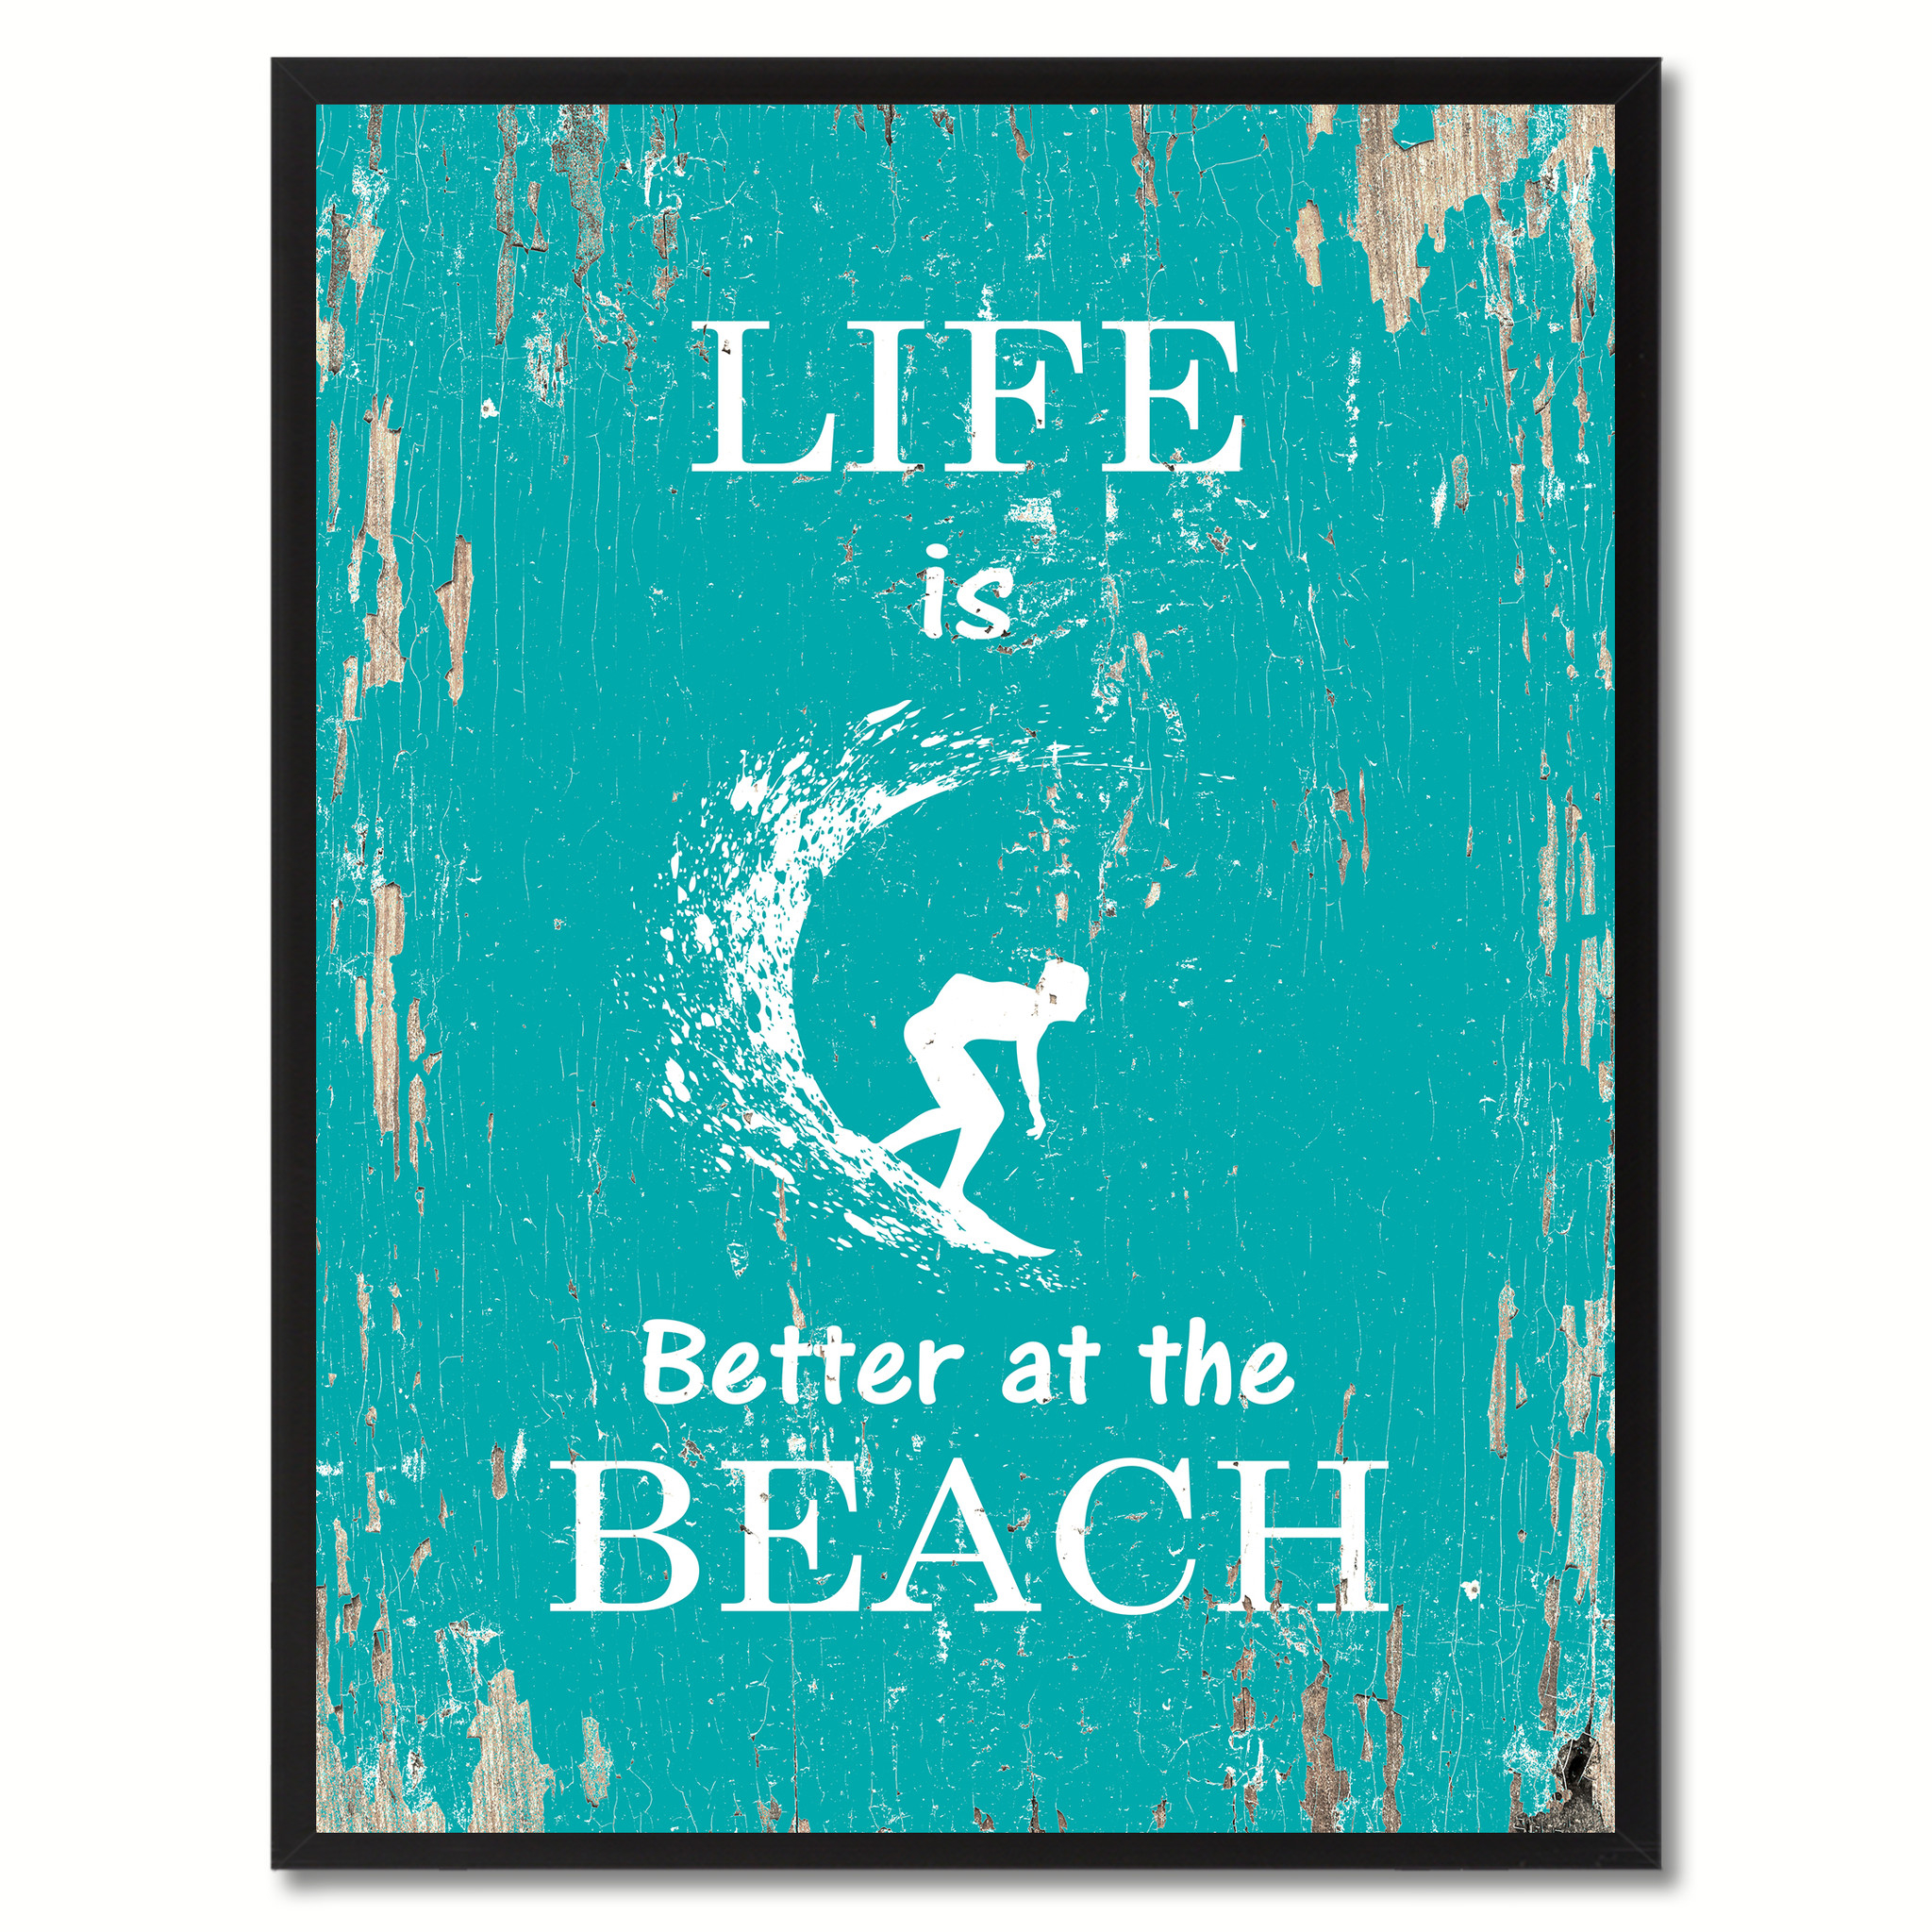 "Life Is Better At The Beach Saying Canvas Print, Black Picture Frame Home Decor Wall Art Gifts - 7""x9\"""